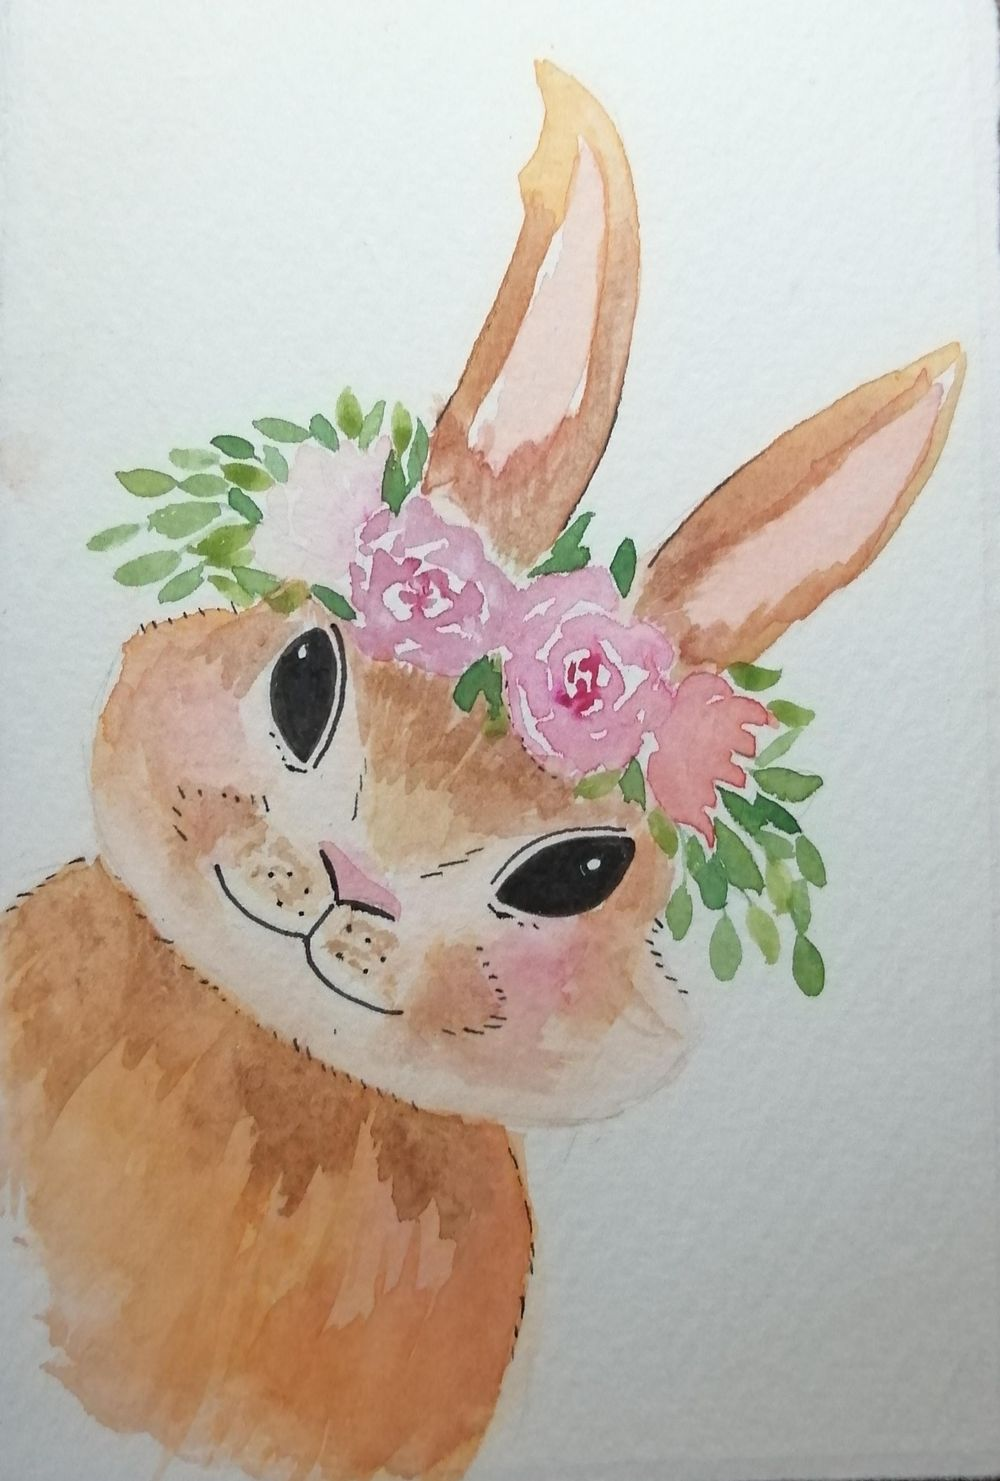 flower bunny - image 1 - student project